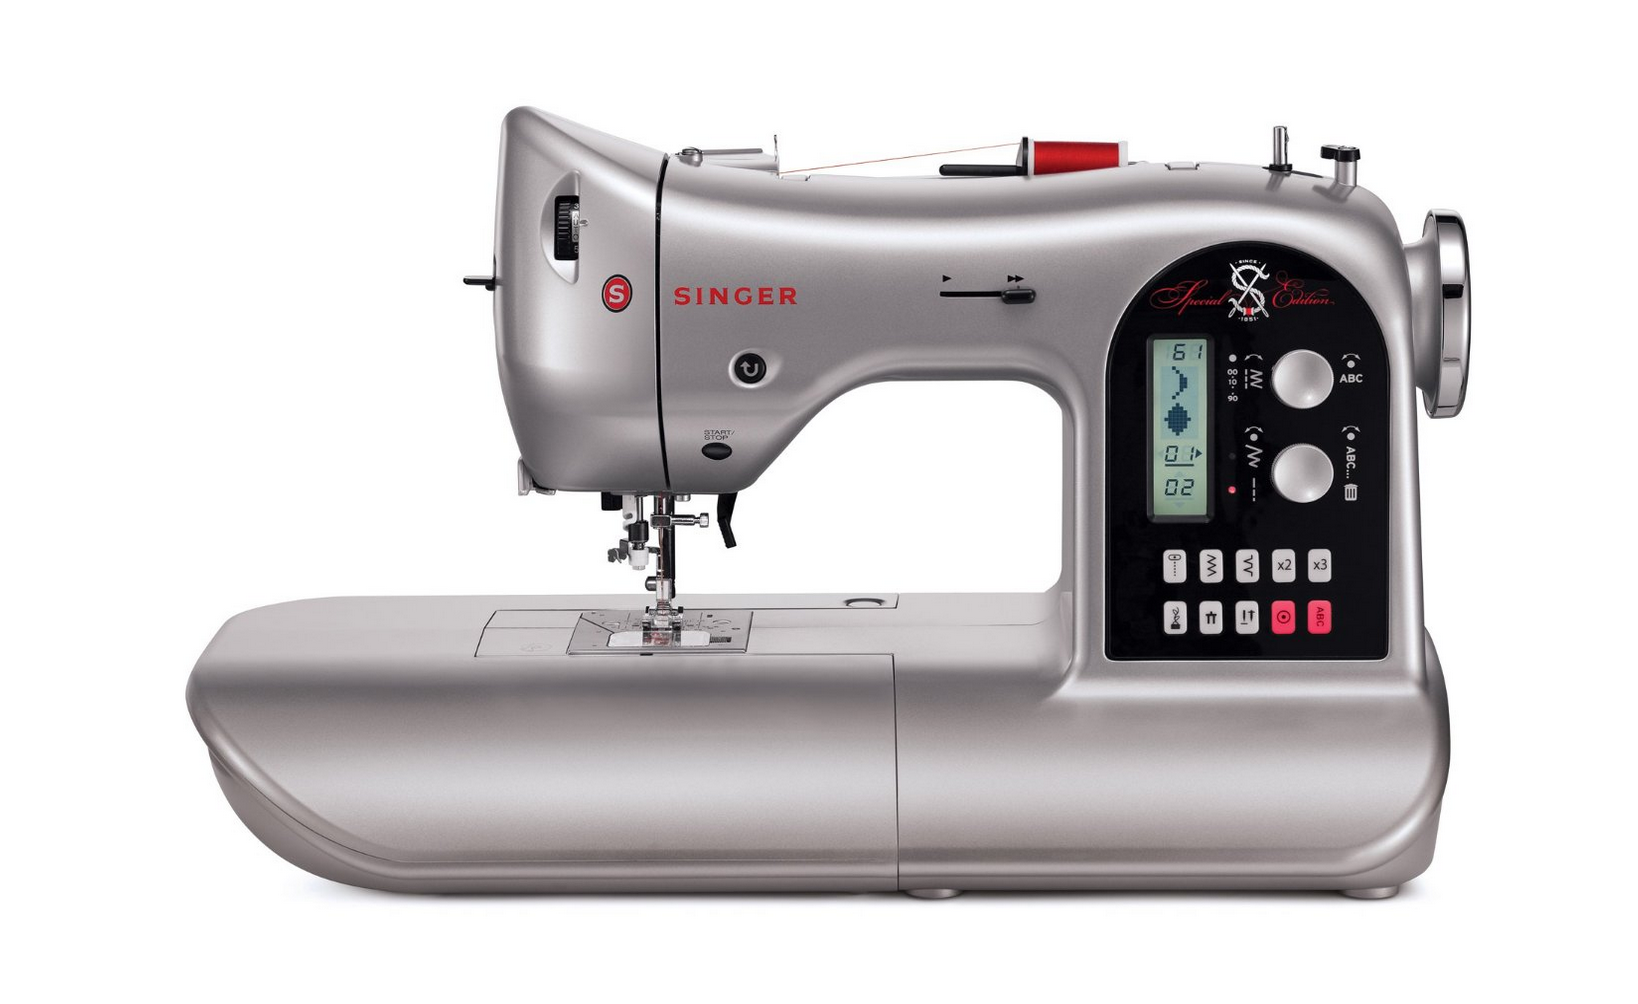 TODAY ONLY! Singer Special Edition Computerized Sewing Machine Only $215 (Reg. 900!)